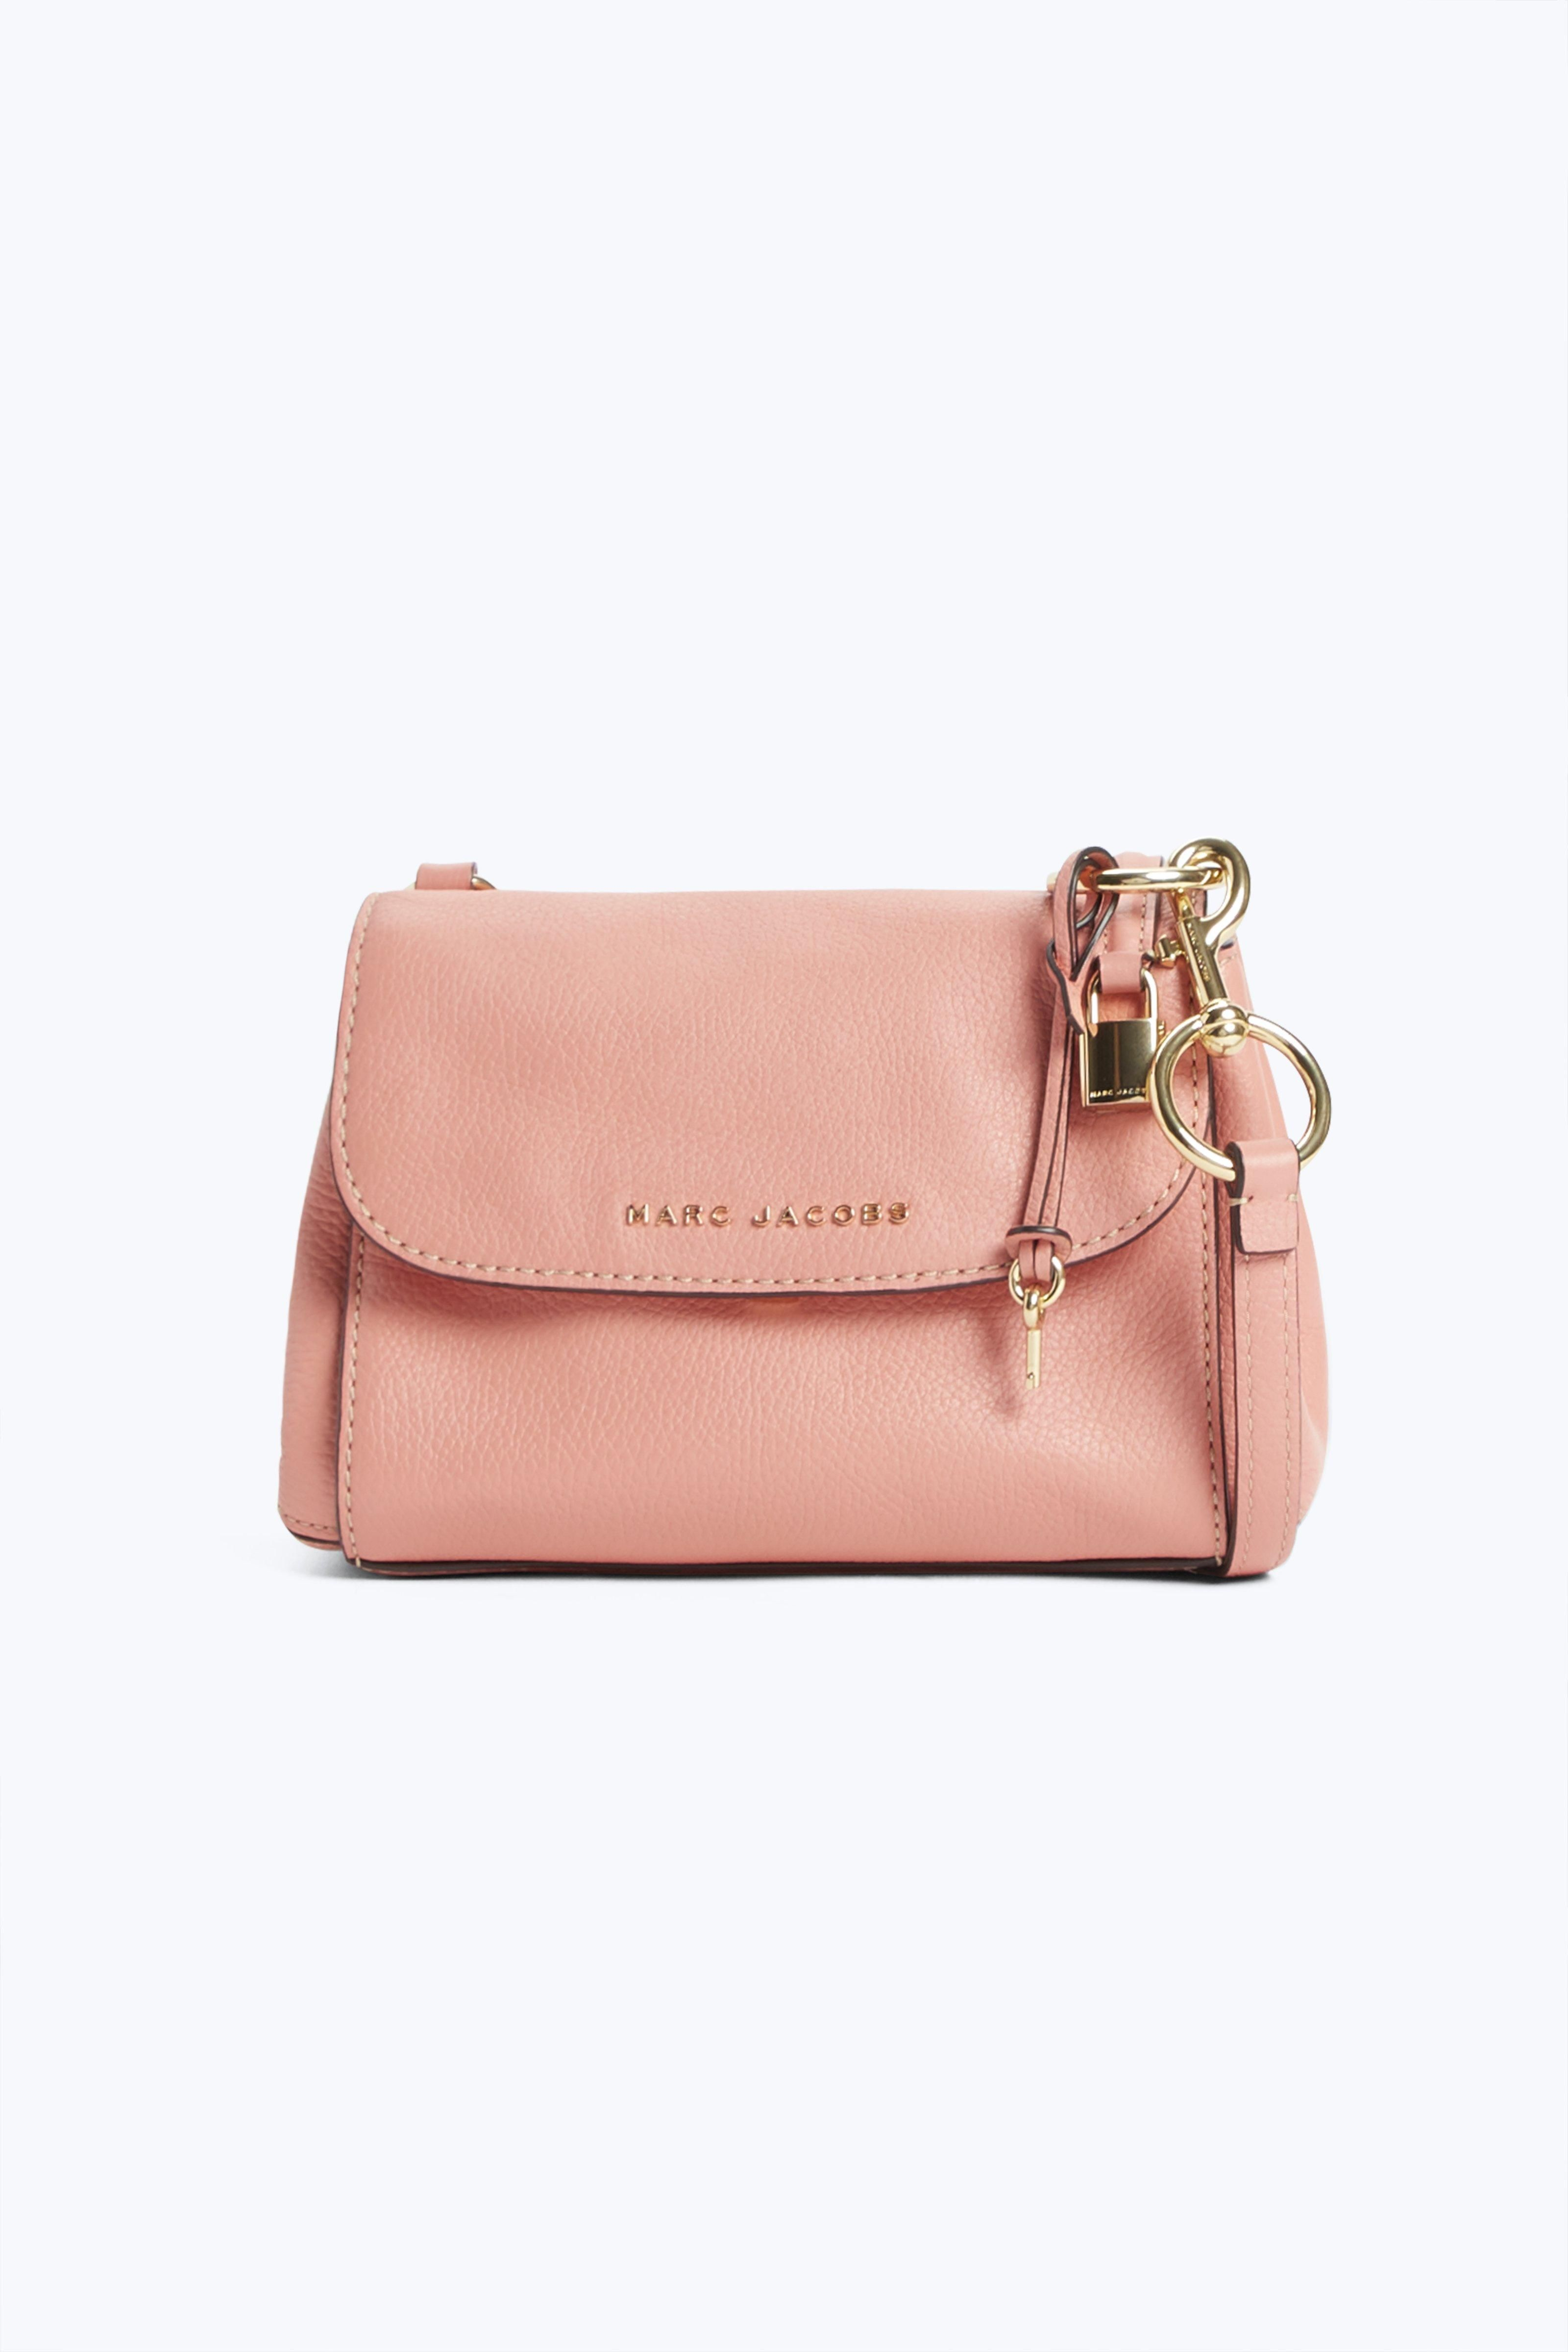 55d614b63a MARC JACOBS The Mini Boho Grind. #marcjacobs #bags #shoulder bags #leather # crossbody #